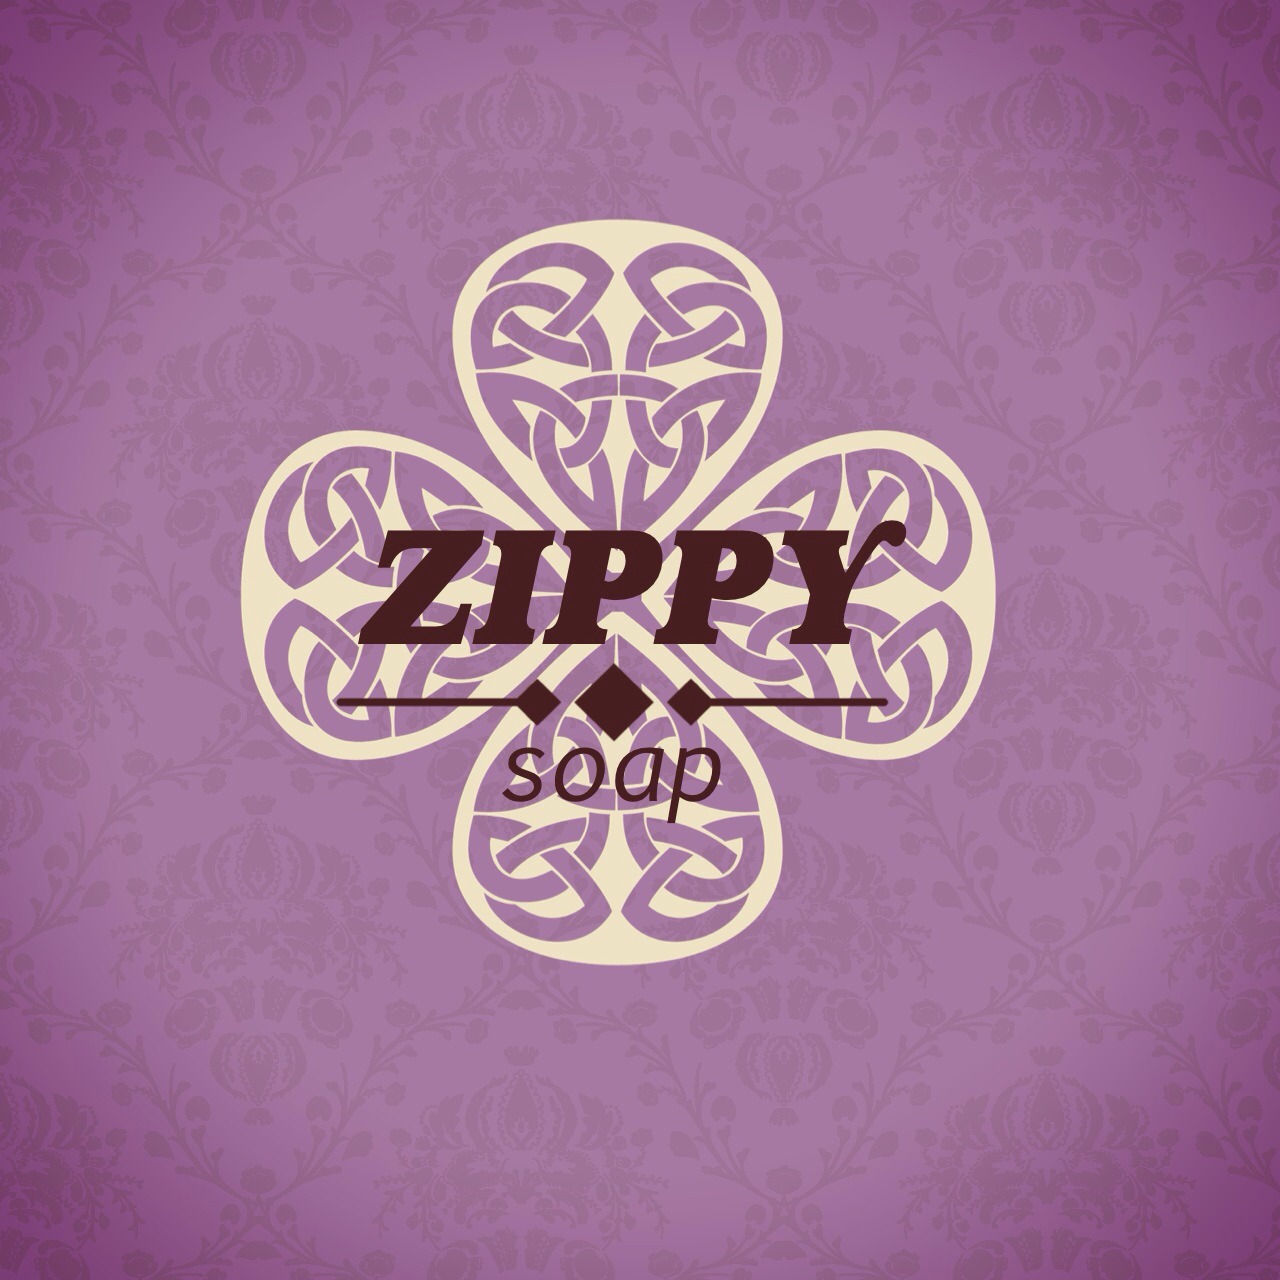 Zippy soap